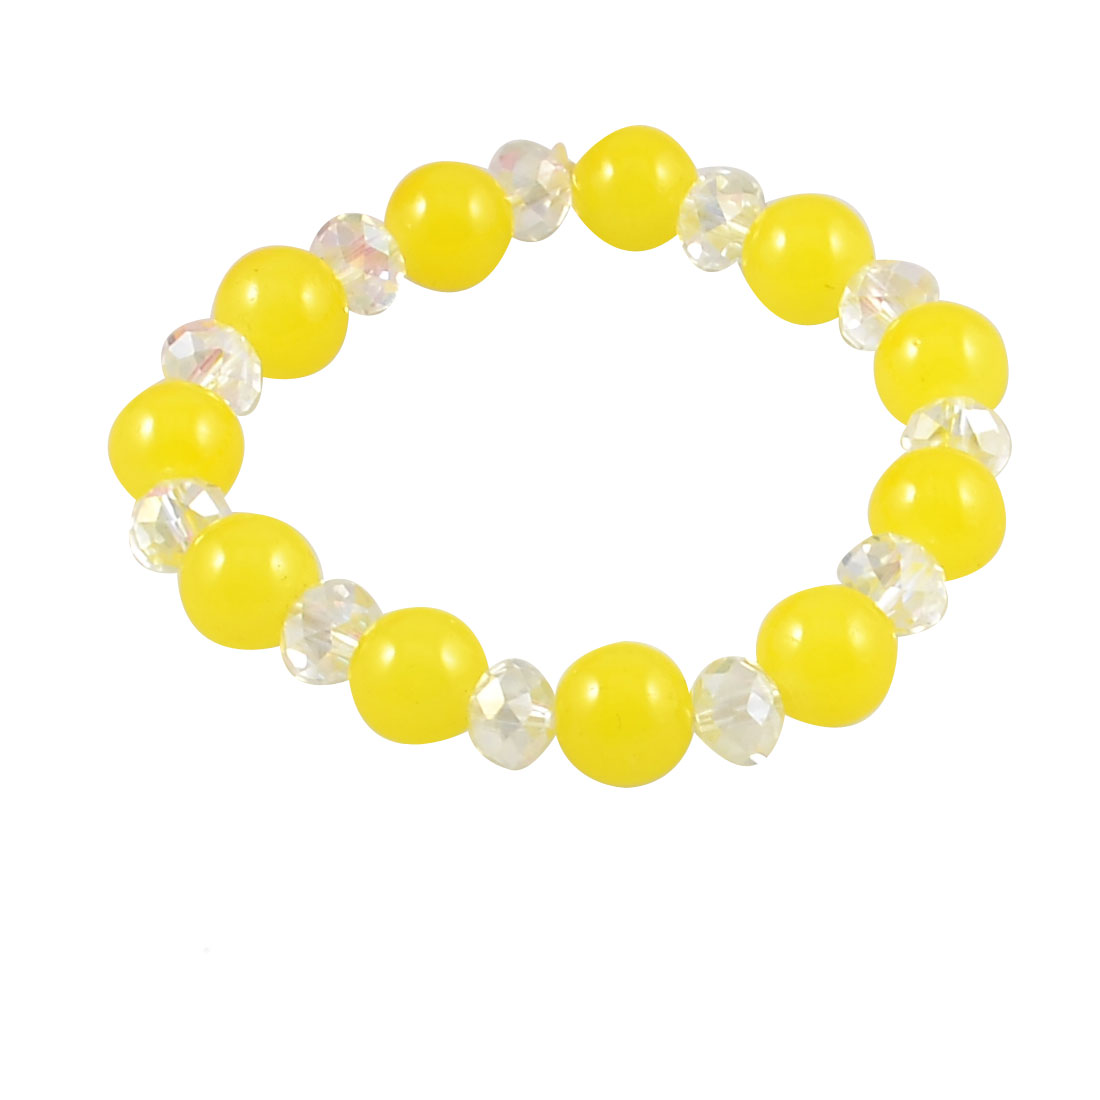 Lady Woman Glittery Yellow Round 10mm Diameter Bead Wrist String Bracelet Chain